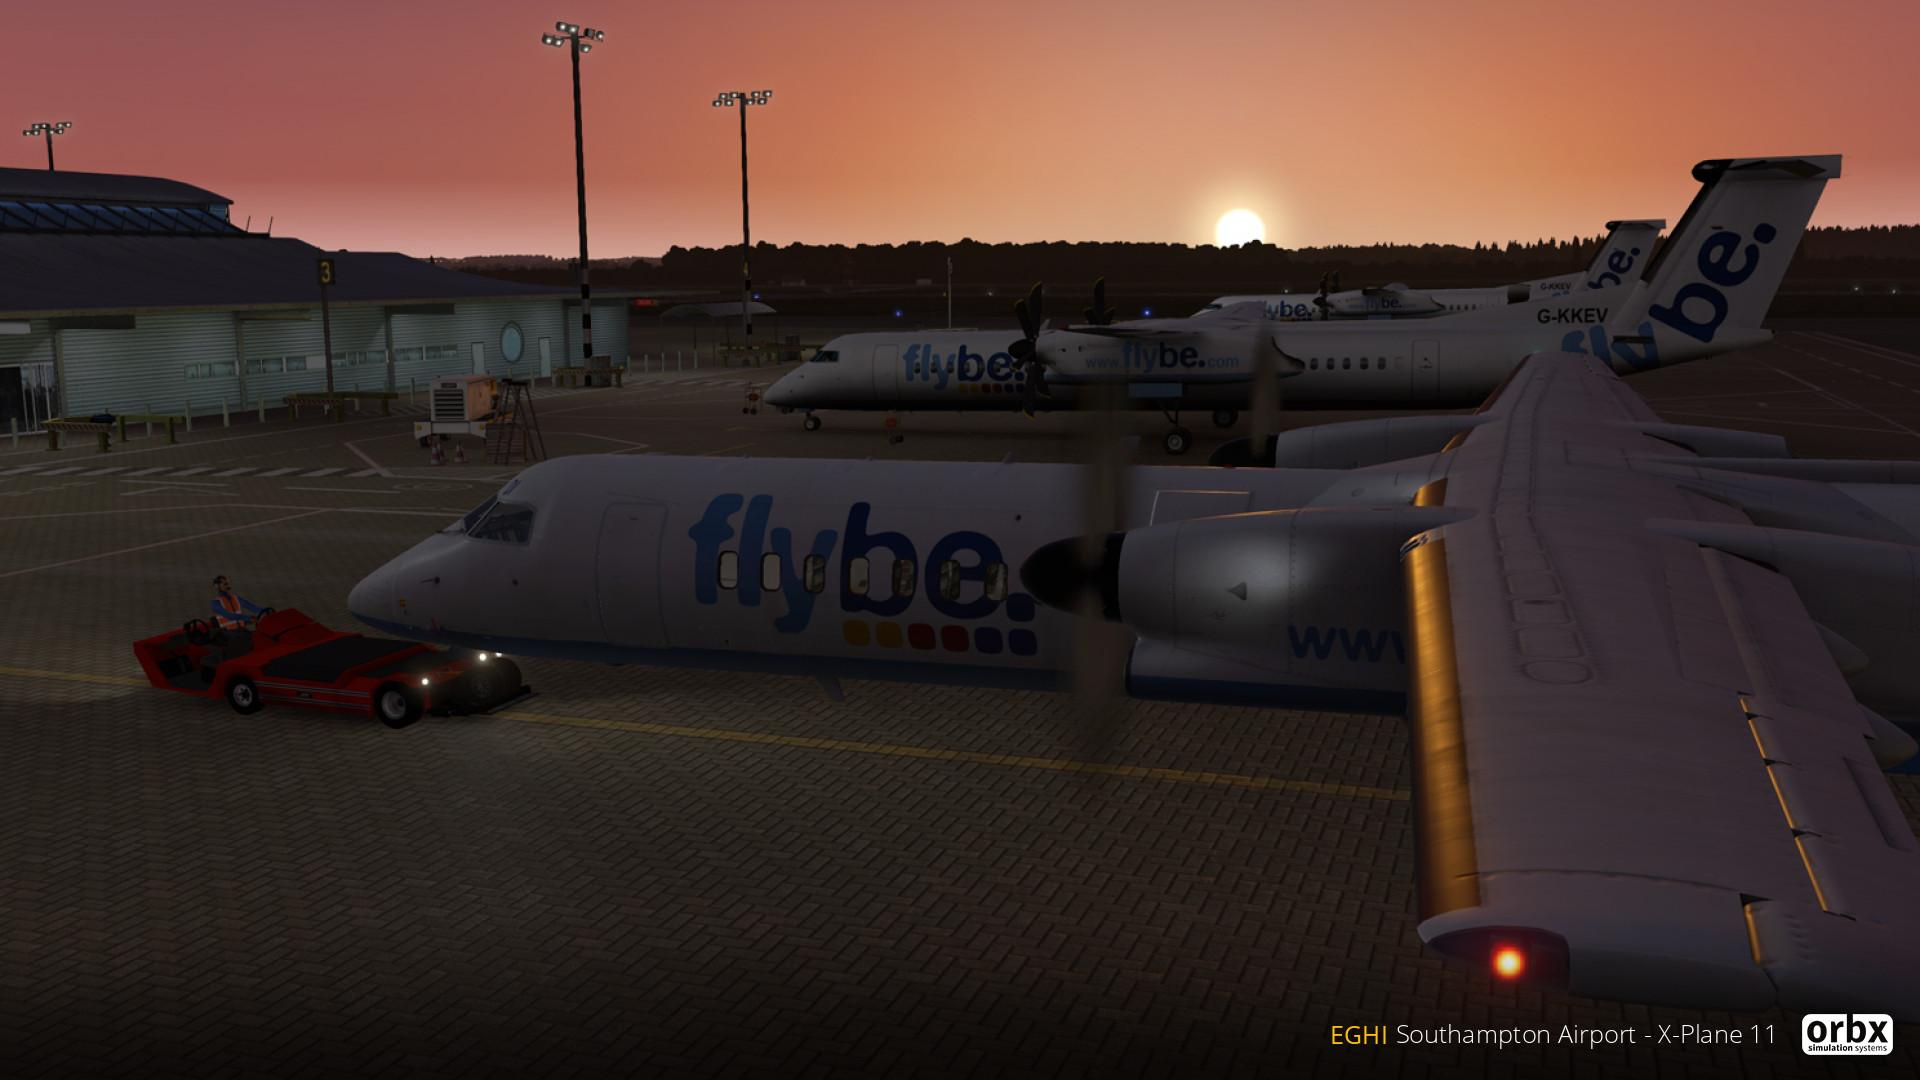 EGHI Southampton Airport makes the leap to X-Plane 11